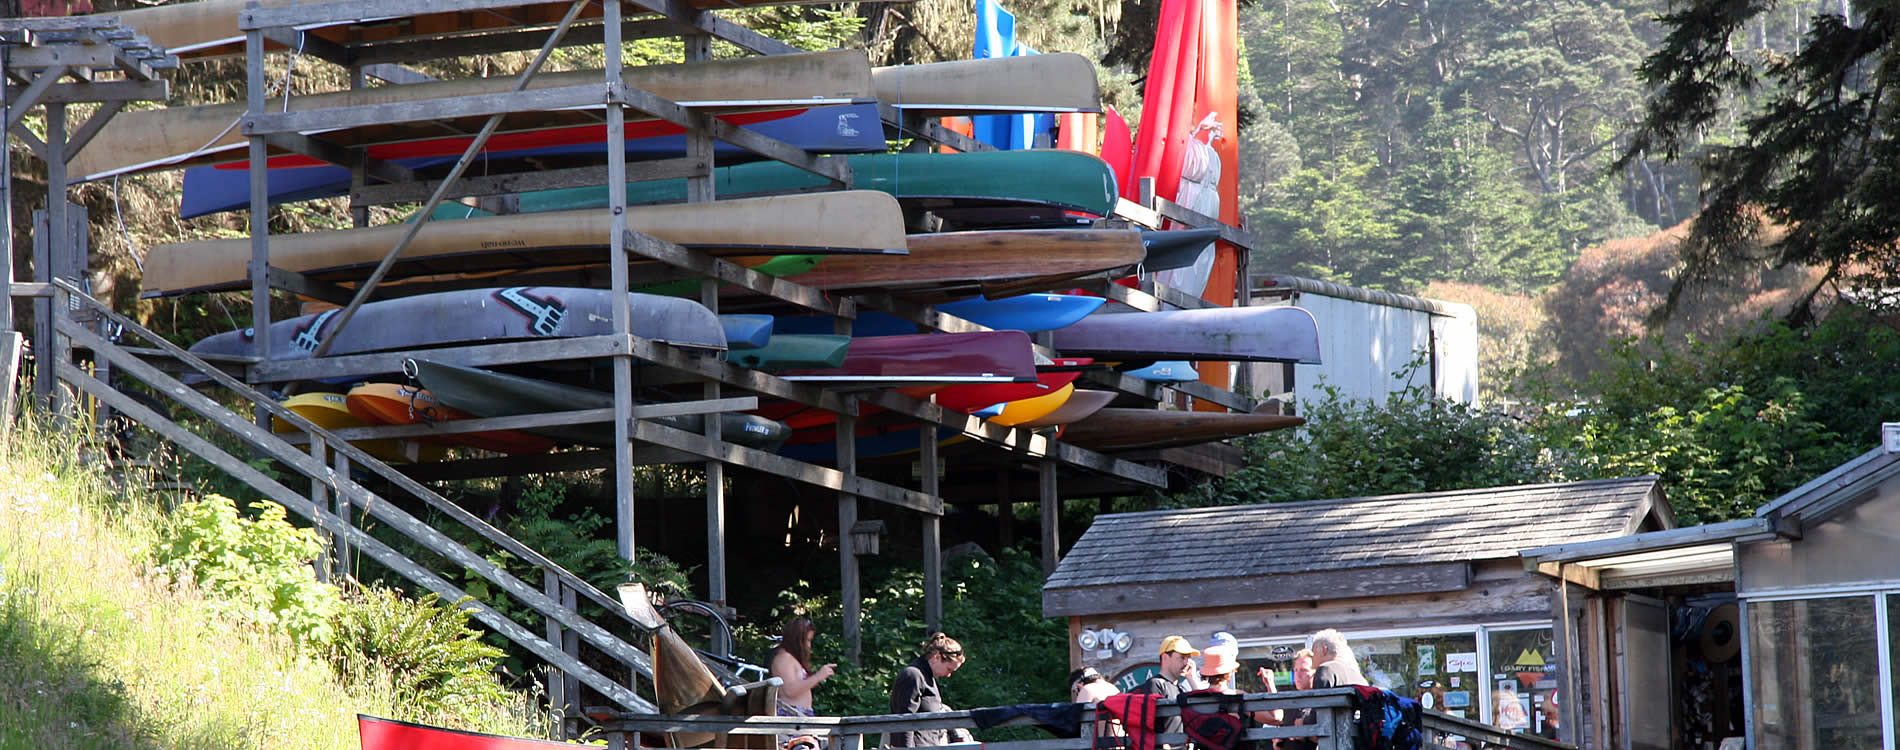 mendocino big river boat and bicycle rentals catch a canoe at stanford inn by the sea